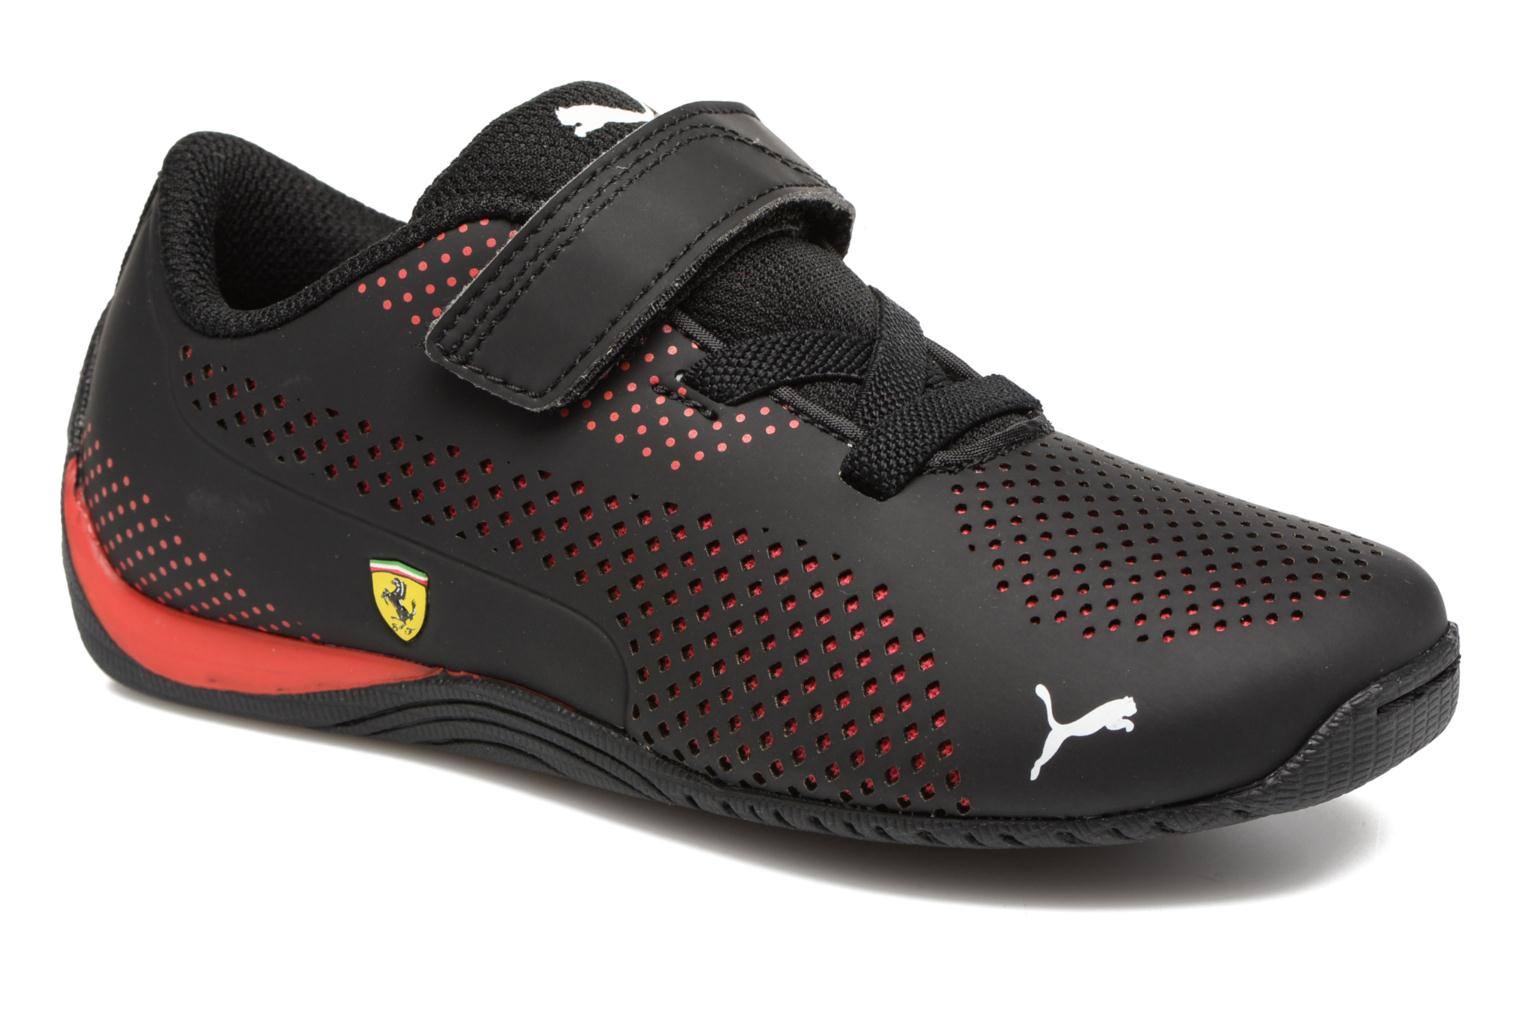 rosso Cat corsa 5 PS Evo Drift black SF V Puma 6qyA8W5wy